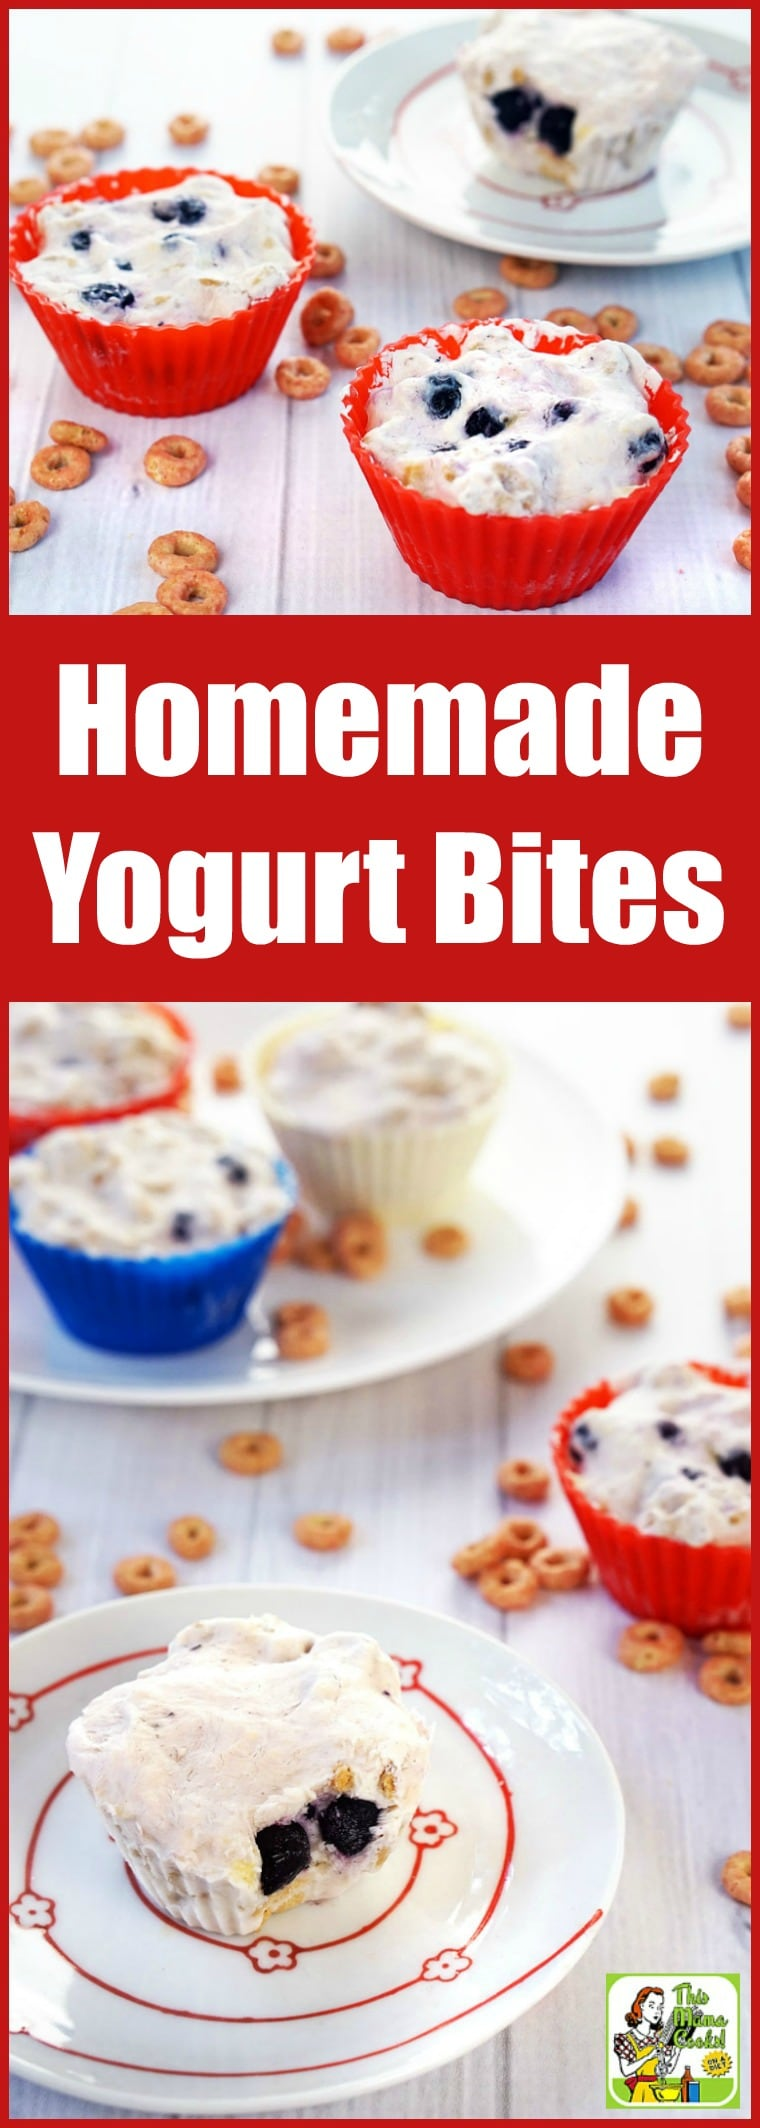 Homemade Yogurt Bites Recipe